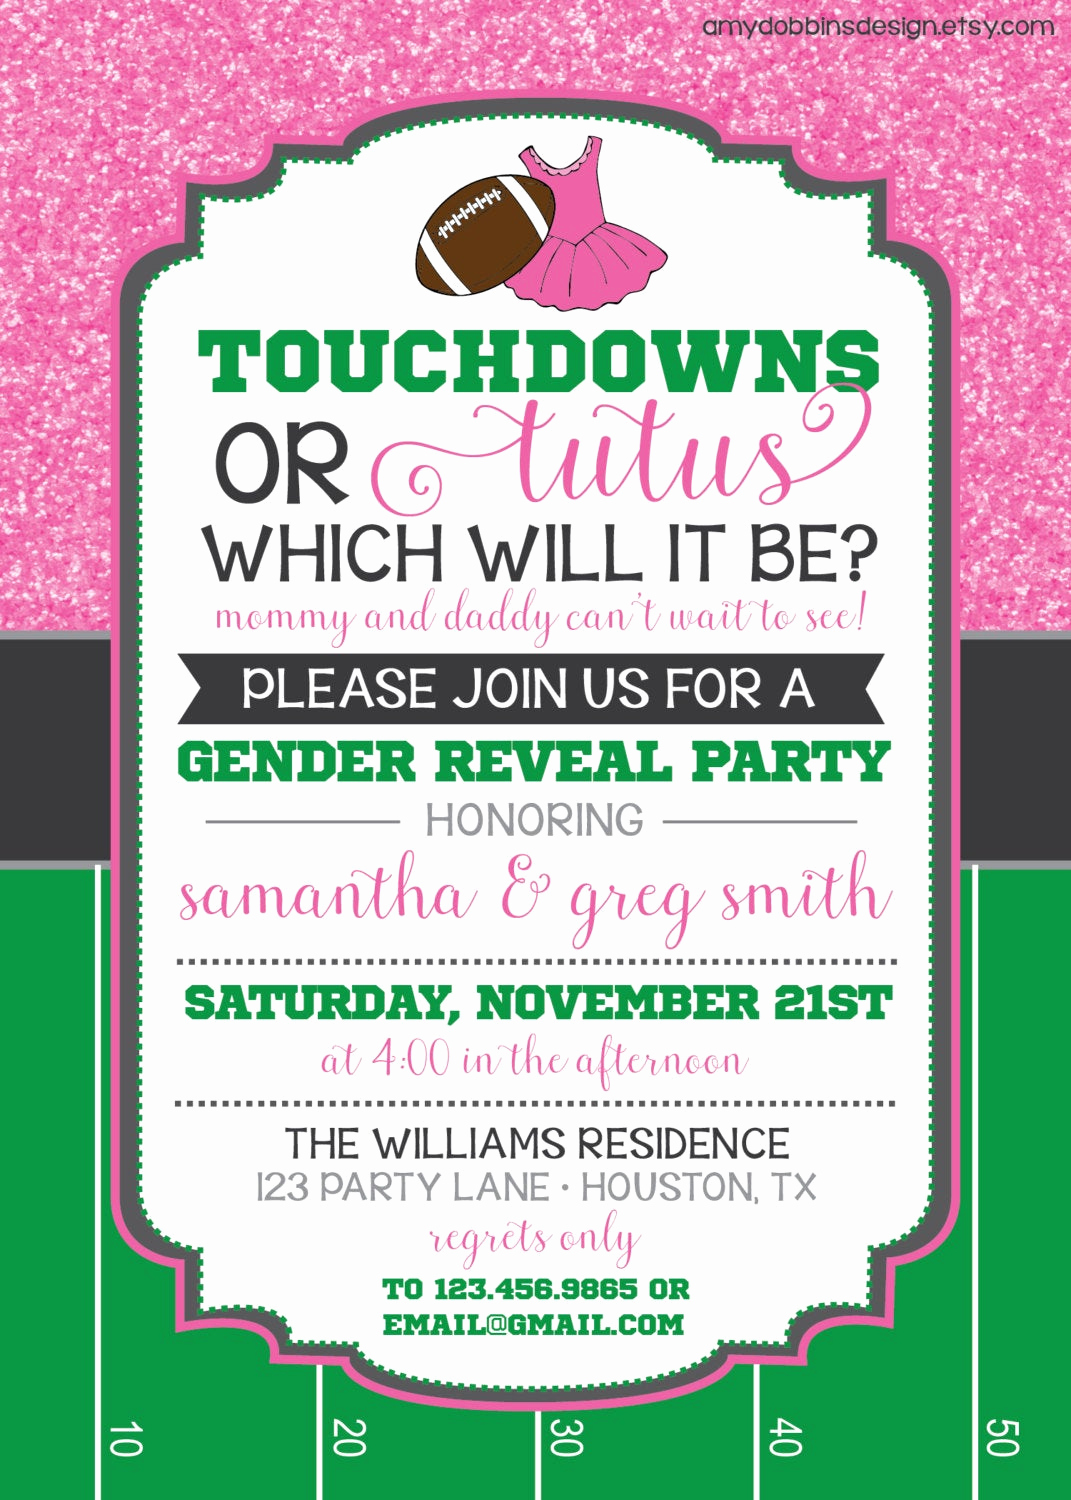 Reveal Party Invitation Ideas Fresh touchdowns or Tutus Gender Reveal Invitation Custom Colors